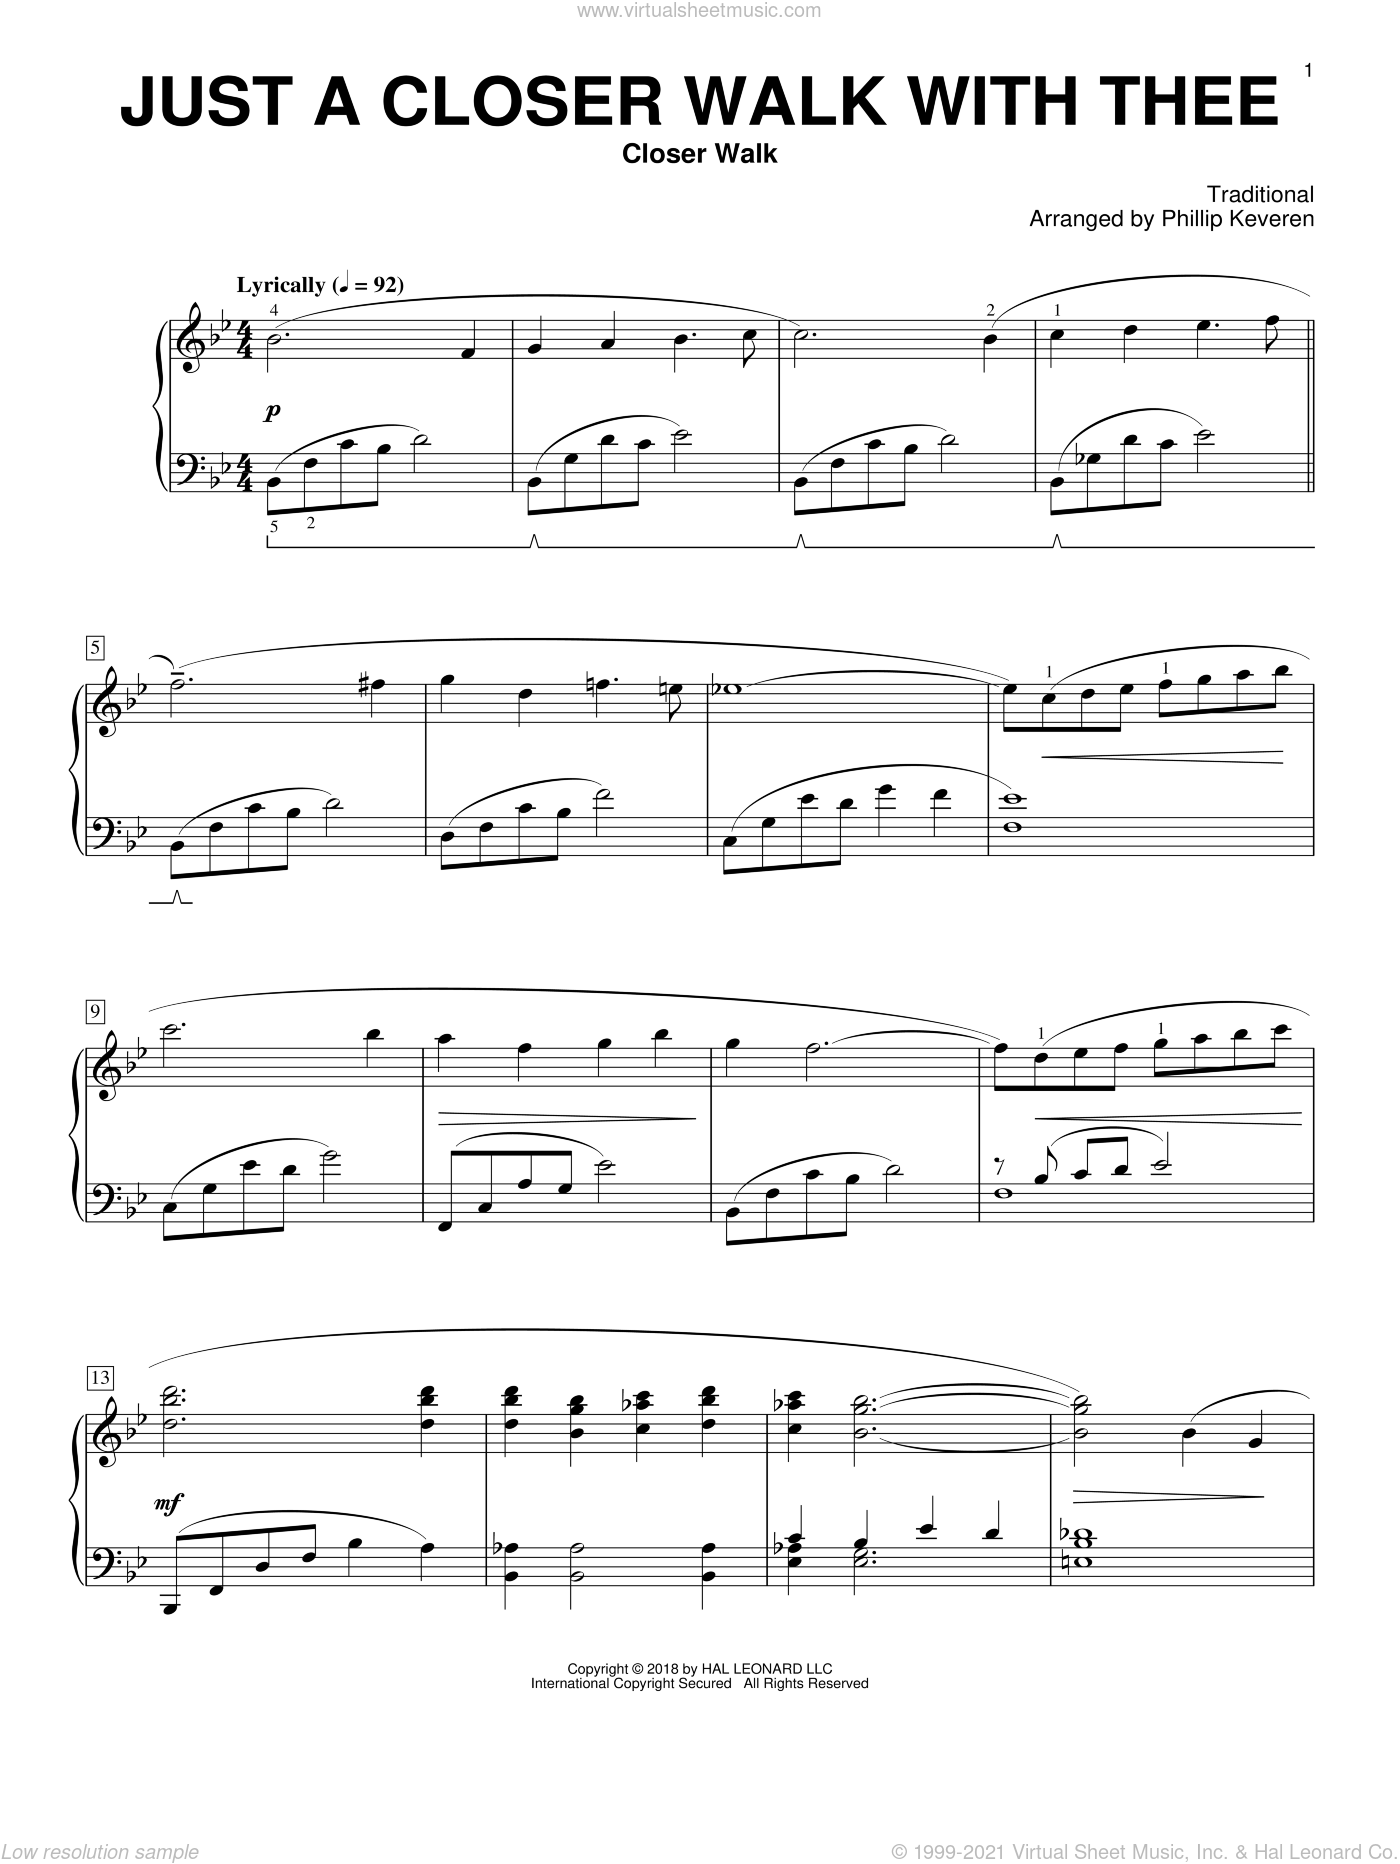 Just A Closer Walk With Thee [Classical version] (arr. Phillip Keveren) sheet music for piano solo by Phillip Keveren, Kenneth Morris and Miscellaneous, classical score, intermediate skill level